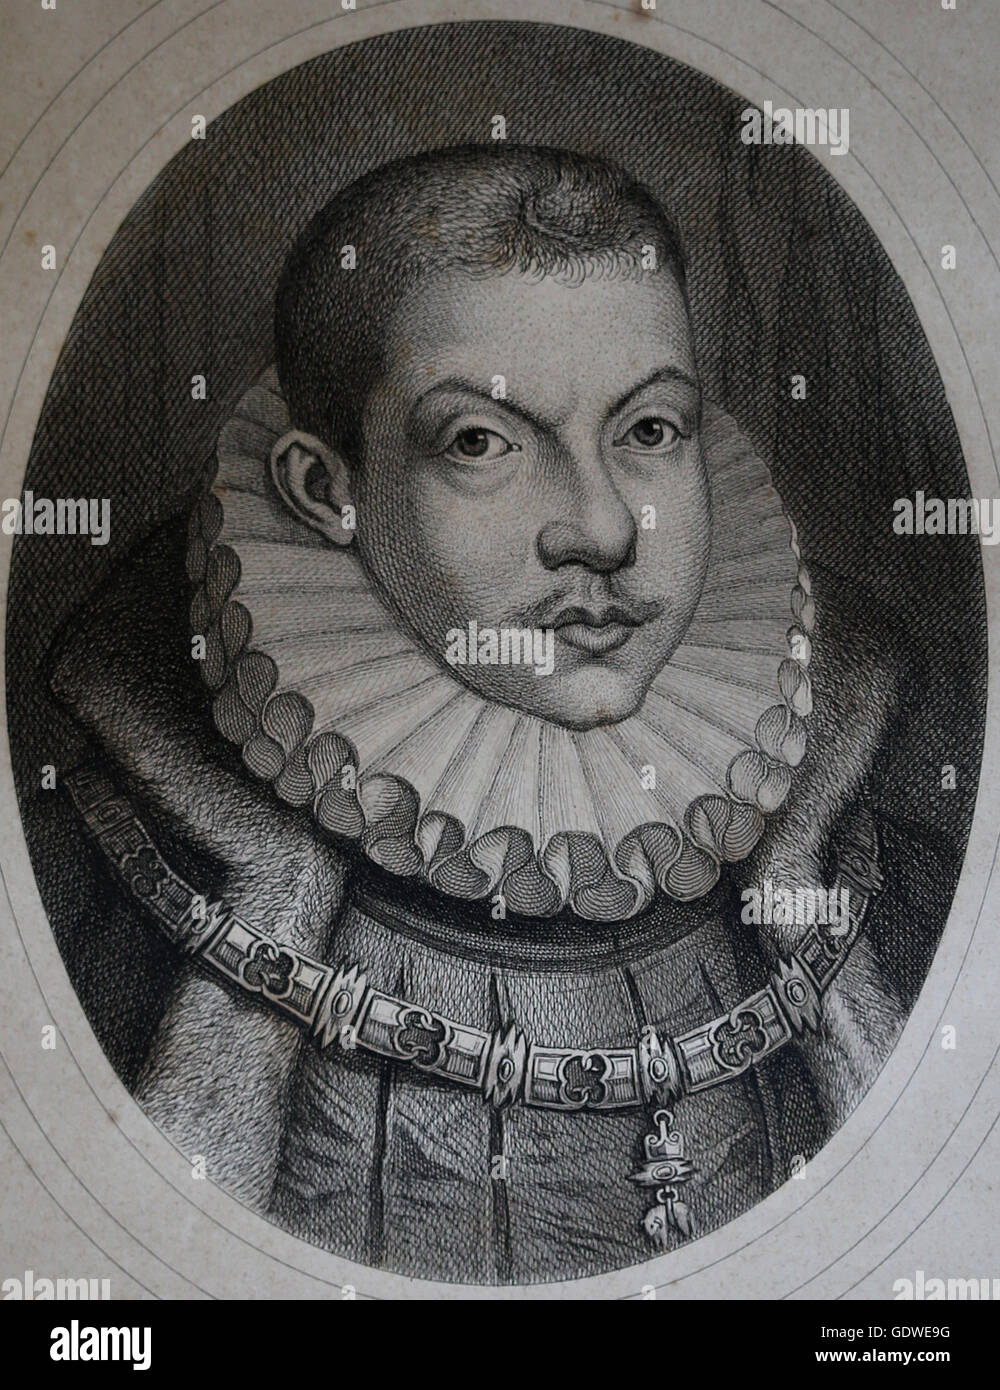 Philip III of Spain (1578-1621). King of Spain and Portugal. House of Habsburg. Portrait. Engraving, 19th century. - Stock Image